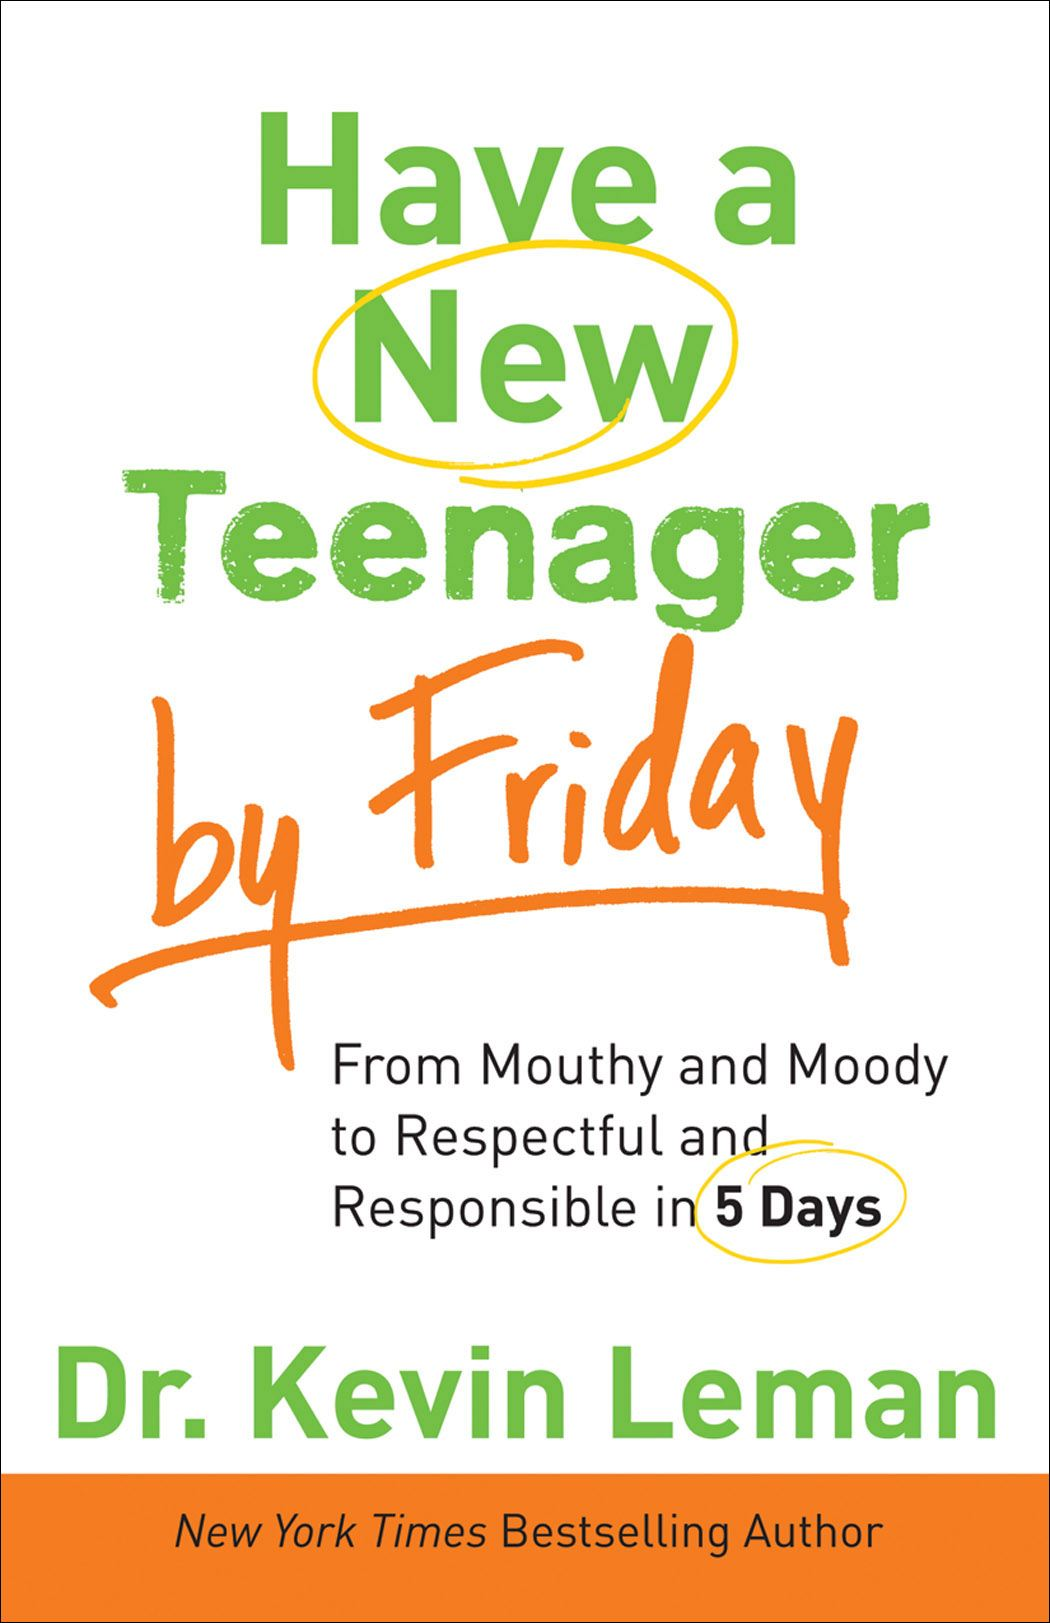 Have a New Teenager by Friday By: Dr. Kevin Leman